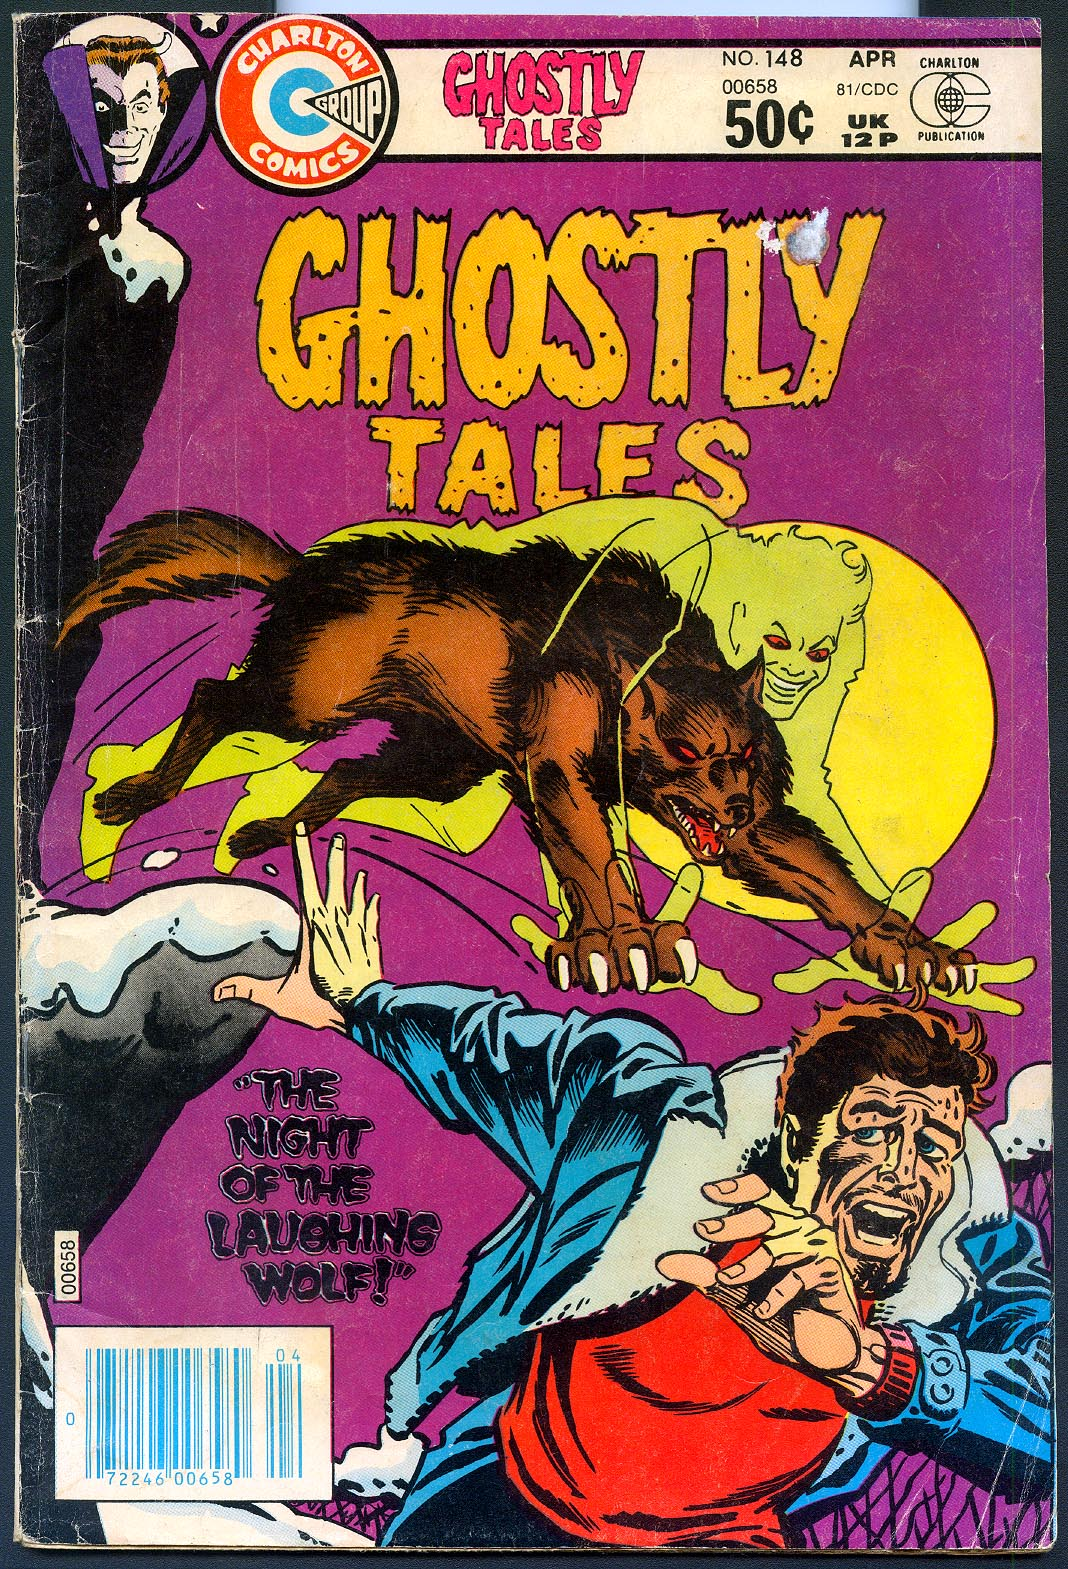 Ghostly Tales (Charlton) 148 -G